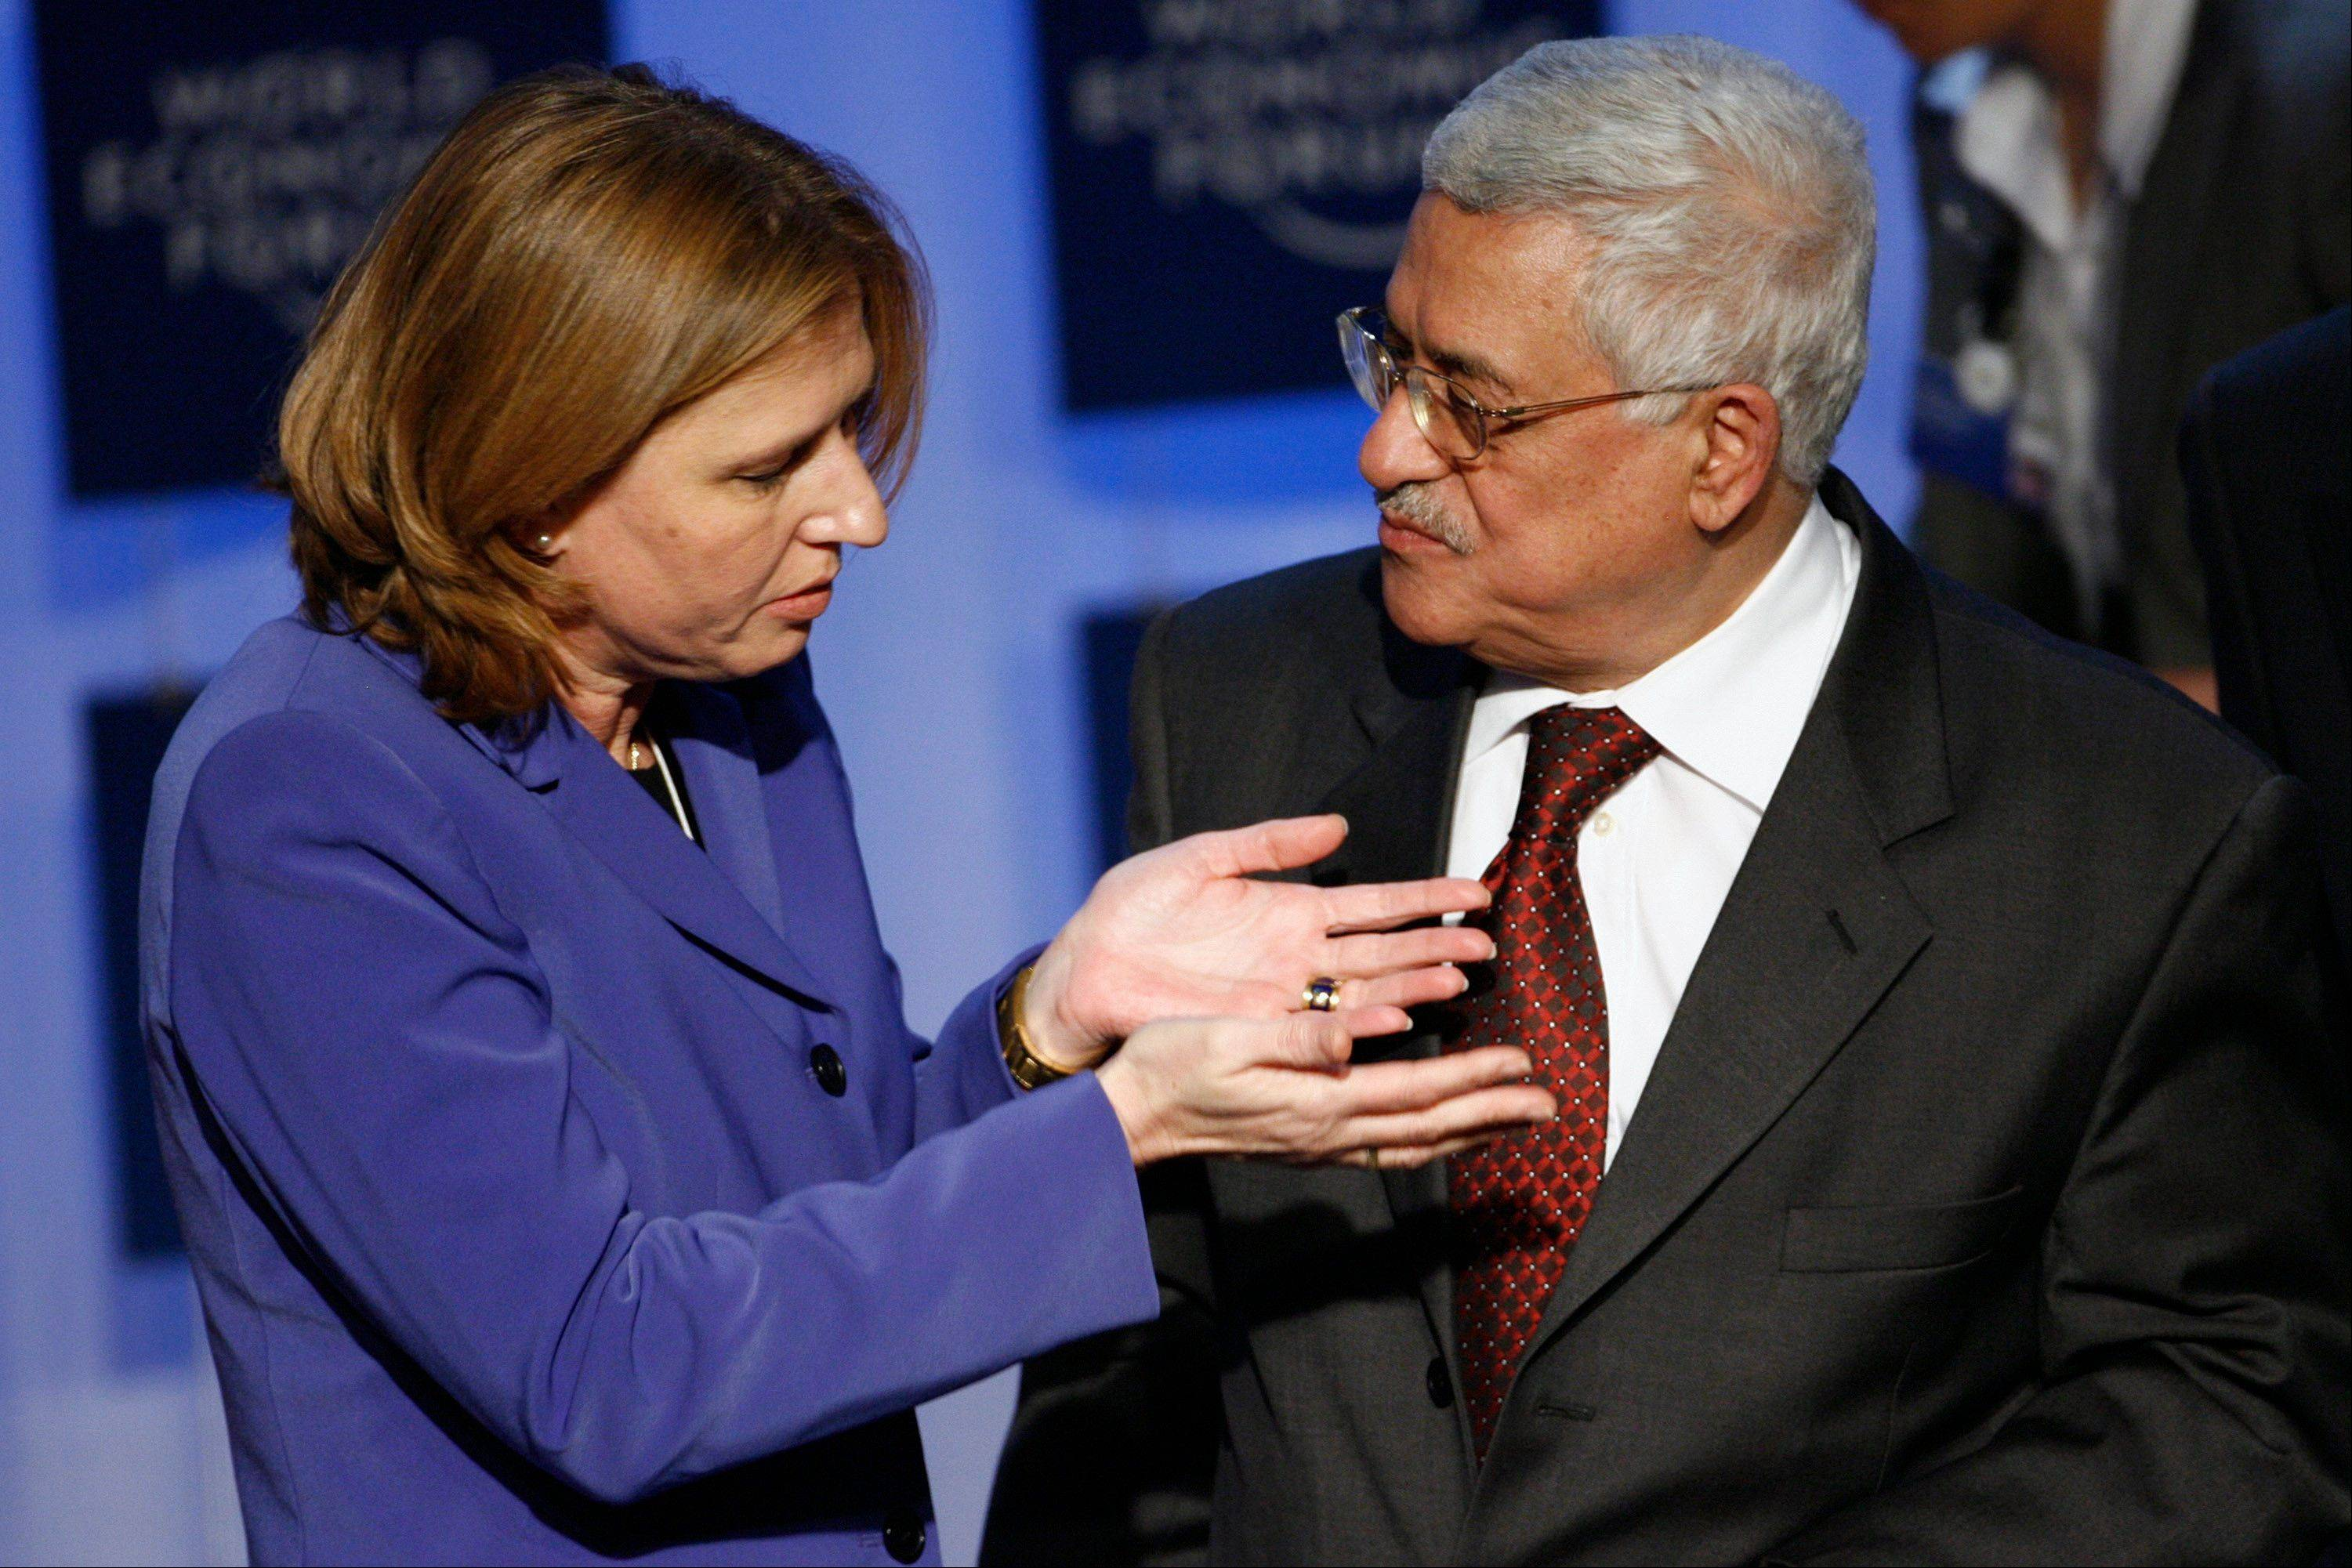 Israeli Foreign Minister Tzipi Livni, left, and President of the Palestinian Authority Mahmoud Abbas meet during the World Economic Forum in Davos, Switzerland, in 2007. The Palestinian president will invite Israeli politicians to the West Bank to try to make sure peacemaking is on the new government's agenda, a senior official said Thursday.